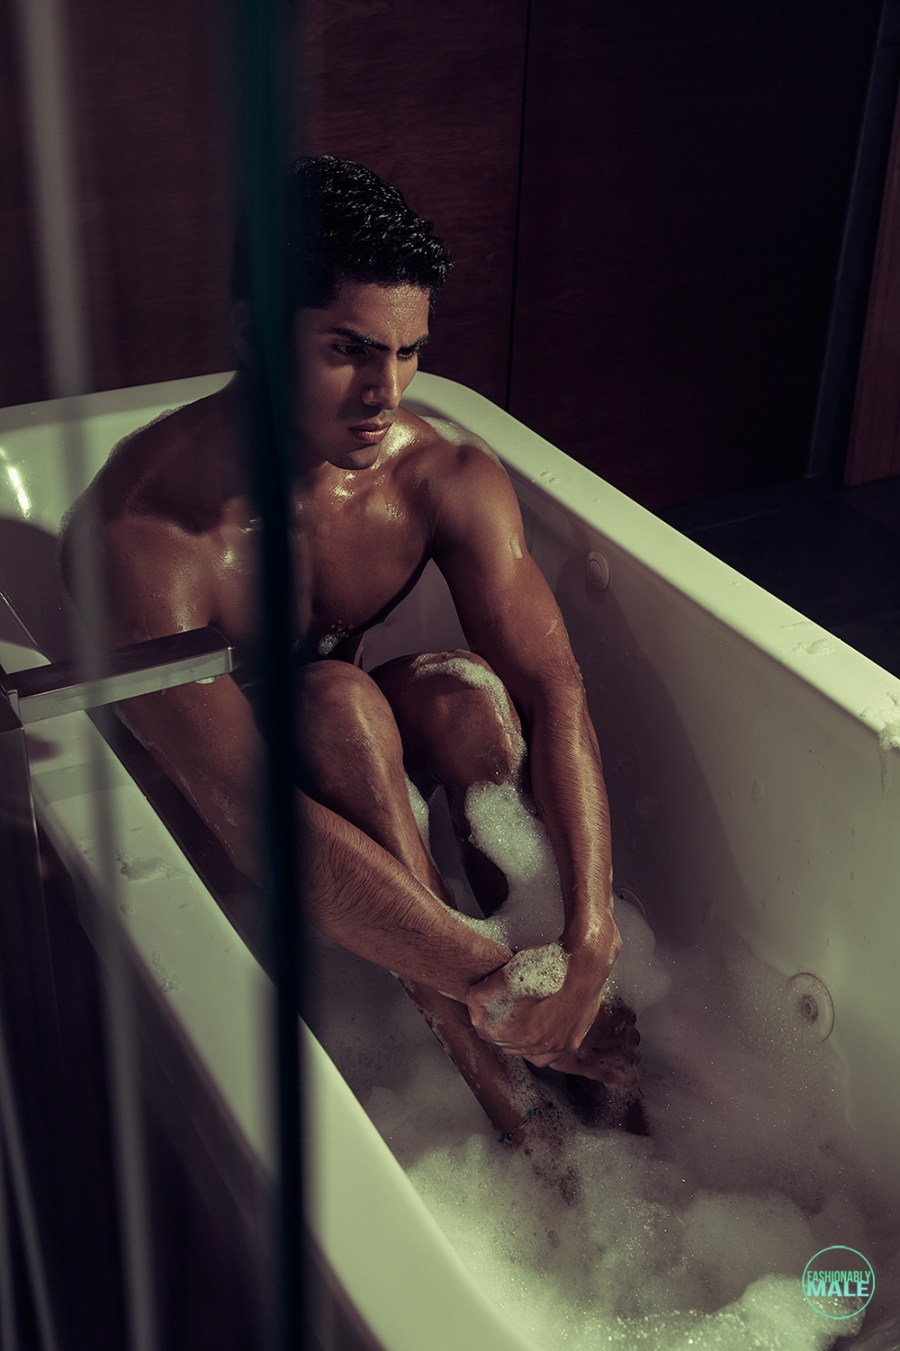 Dany Peña by Angel Ruiz for Fashionably Male11